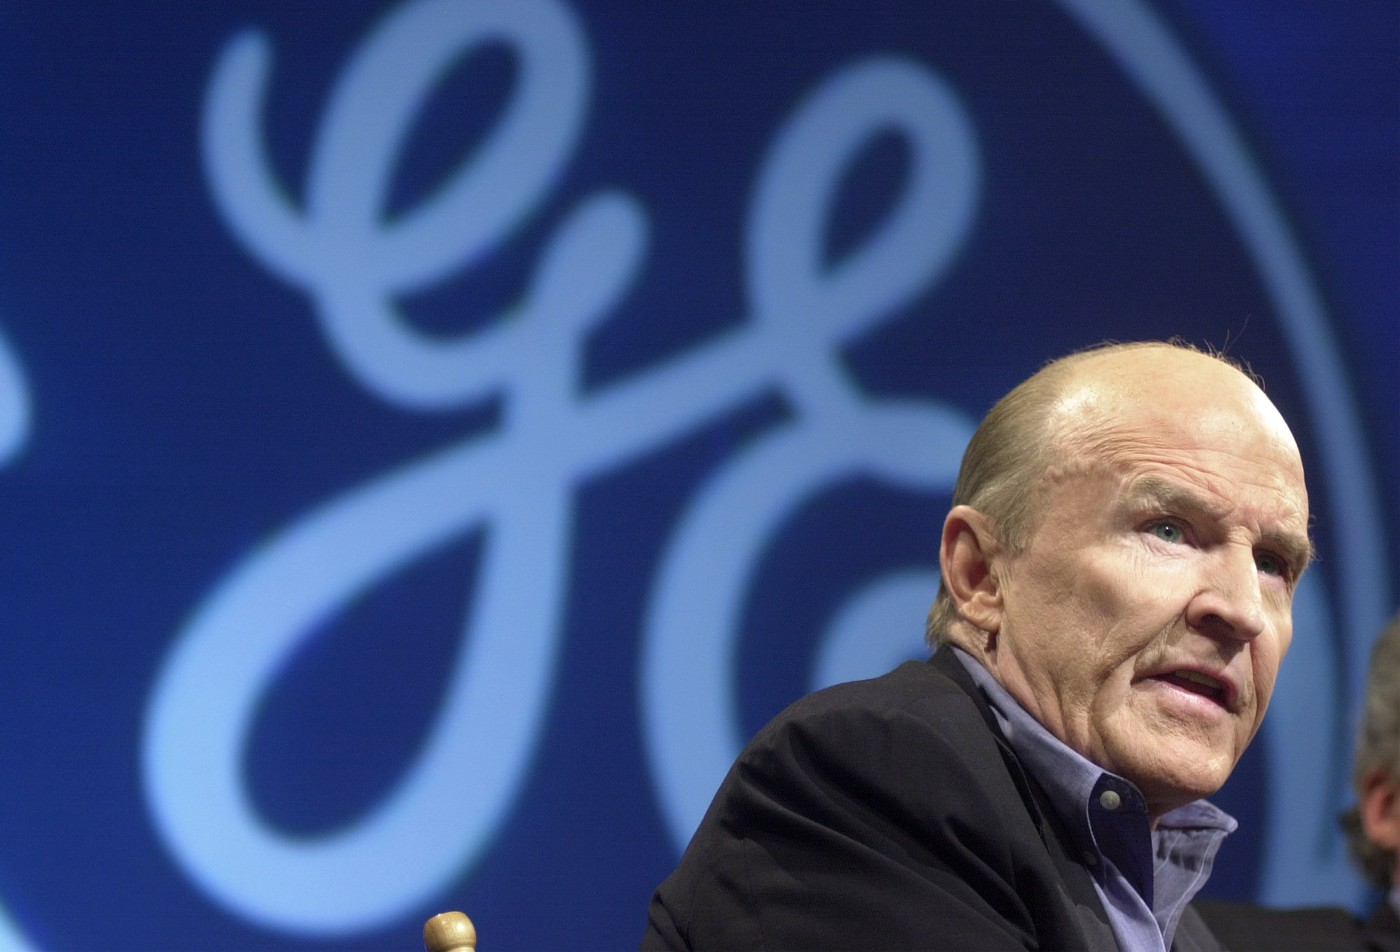 General Electric Chairman and CEO John F. Welch speaks during a news conference November 27, 2000, in New York City.